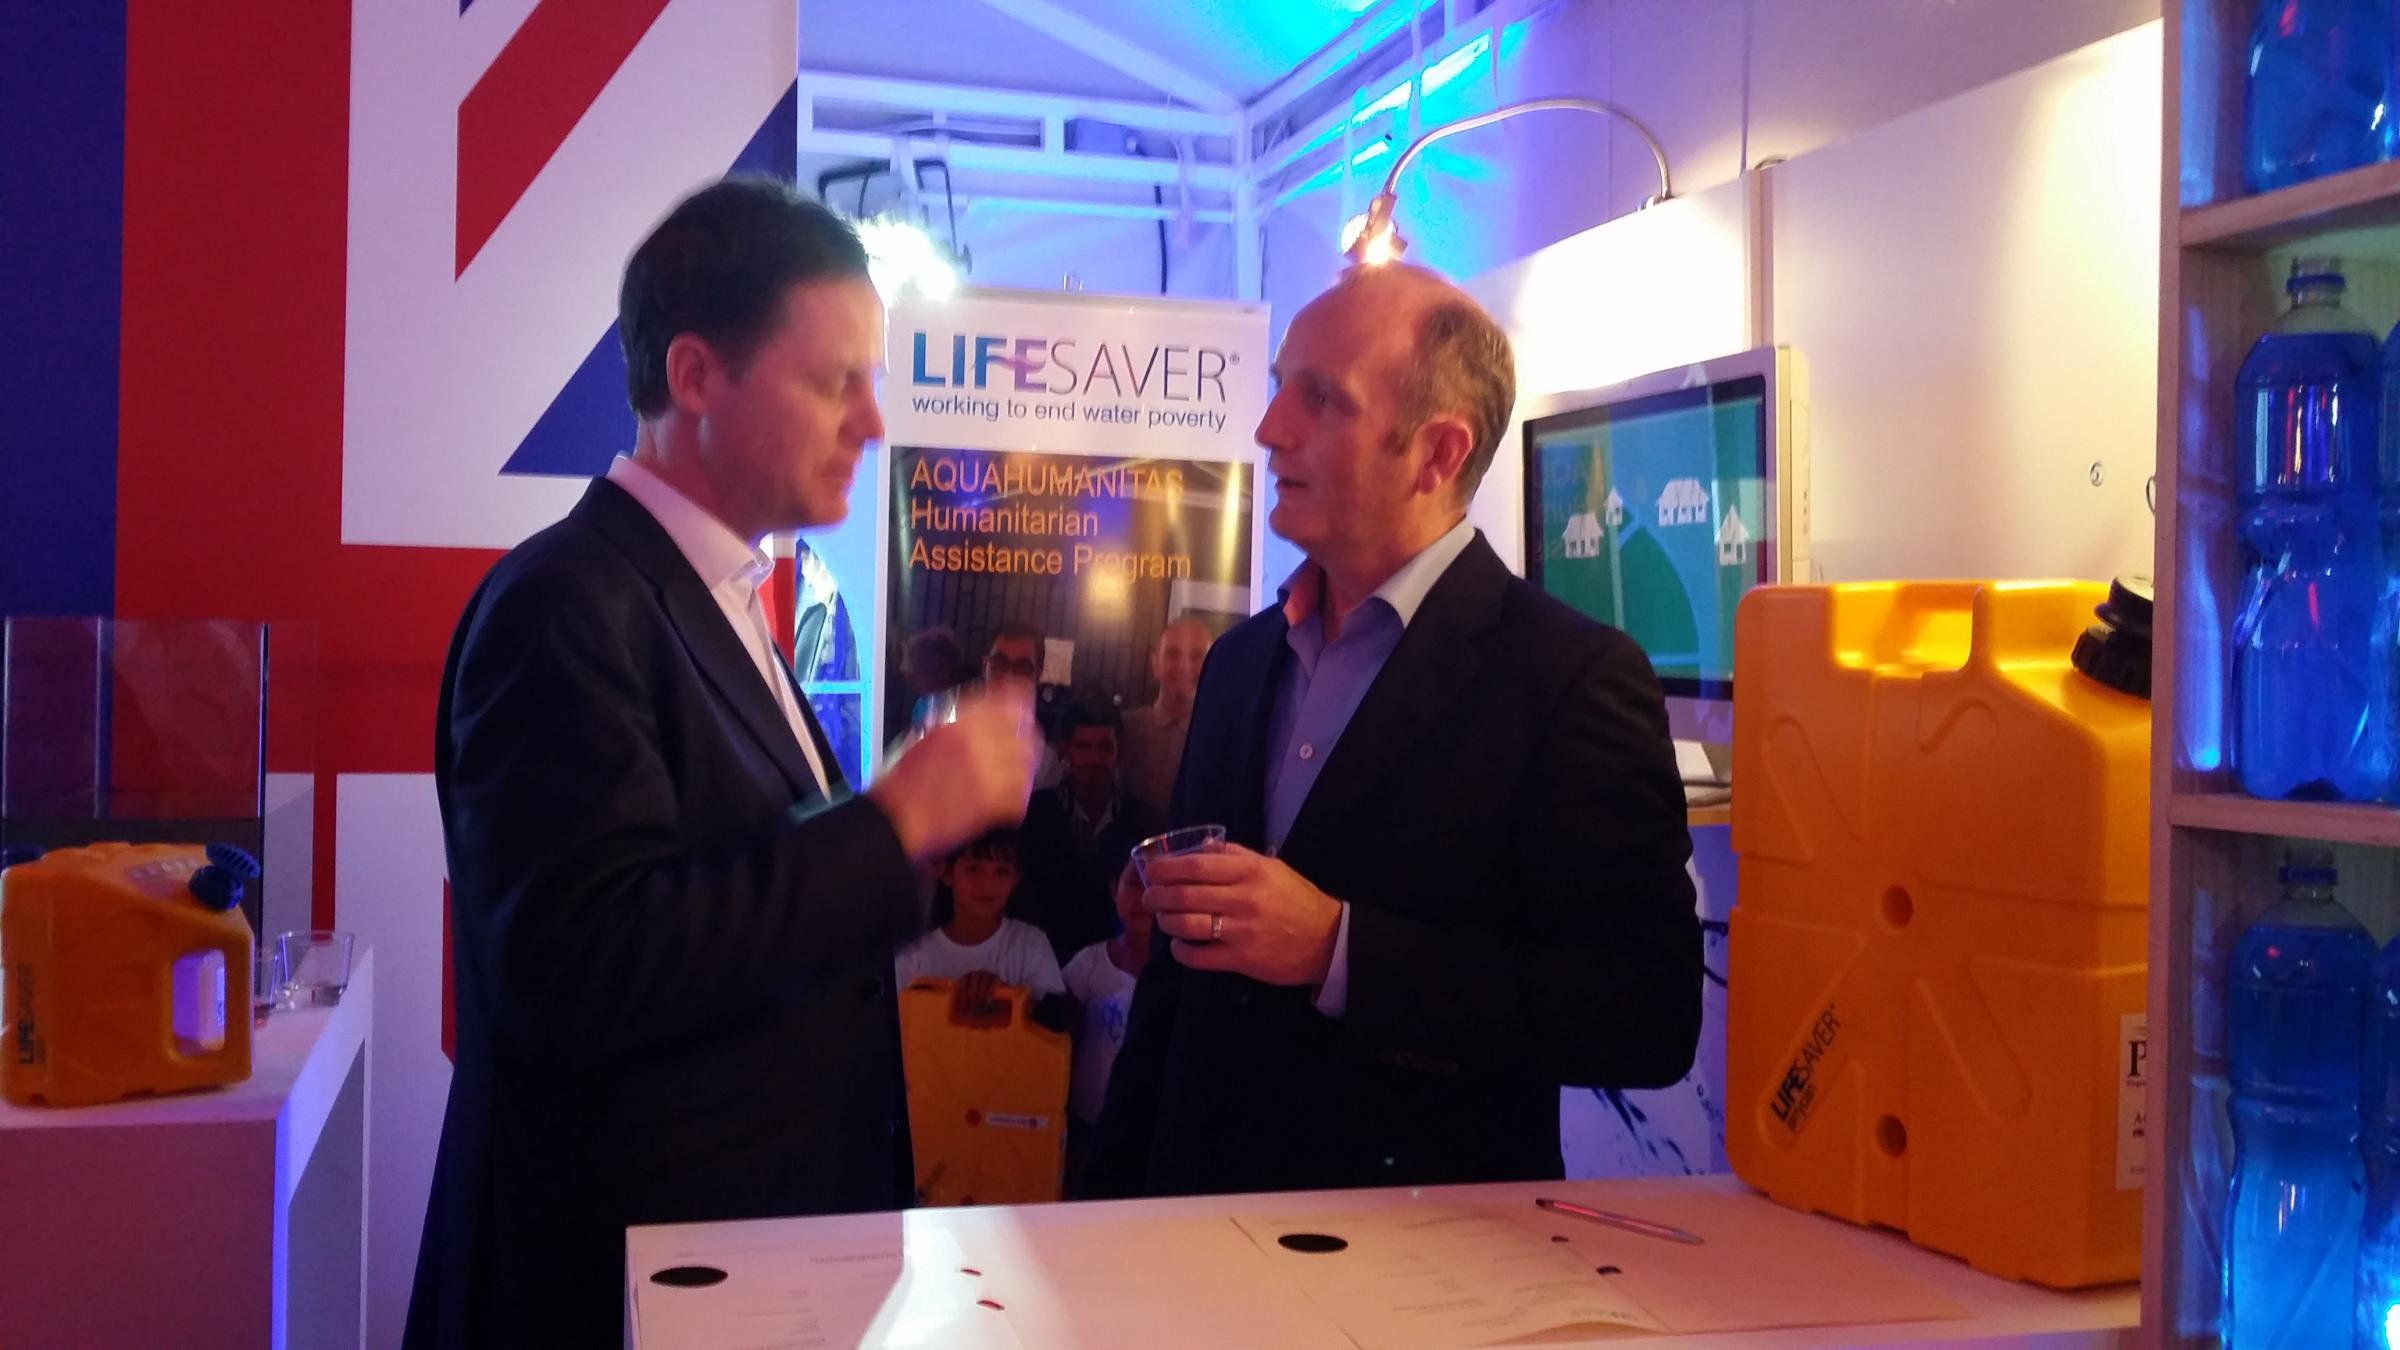 Deputy Prime Minister Nick Clegg (left) with Michael Pritchard, Founder-Inventor, right.